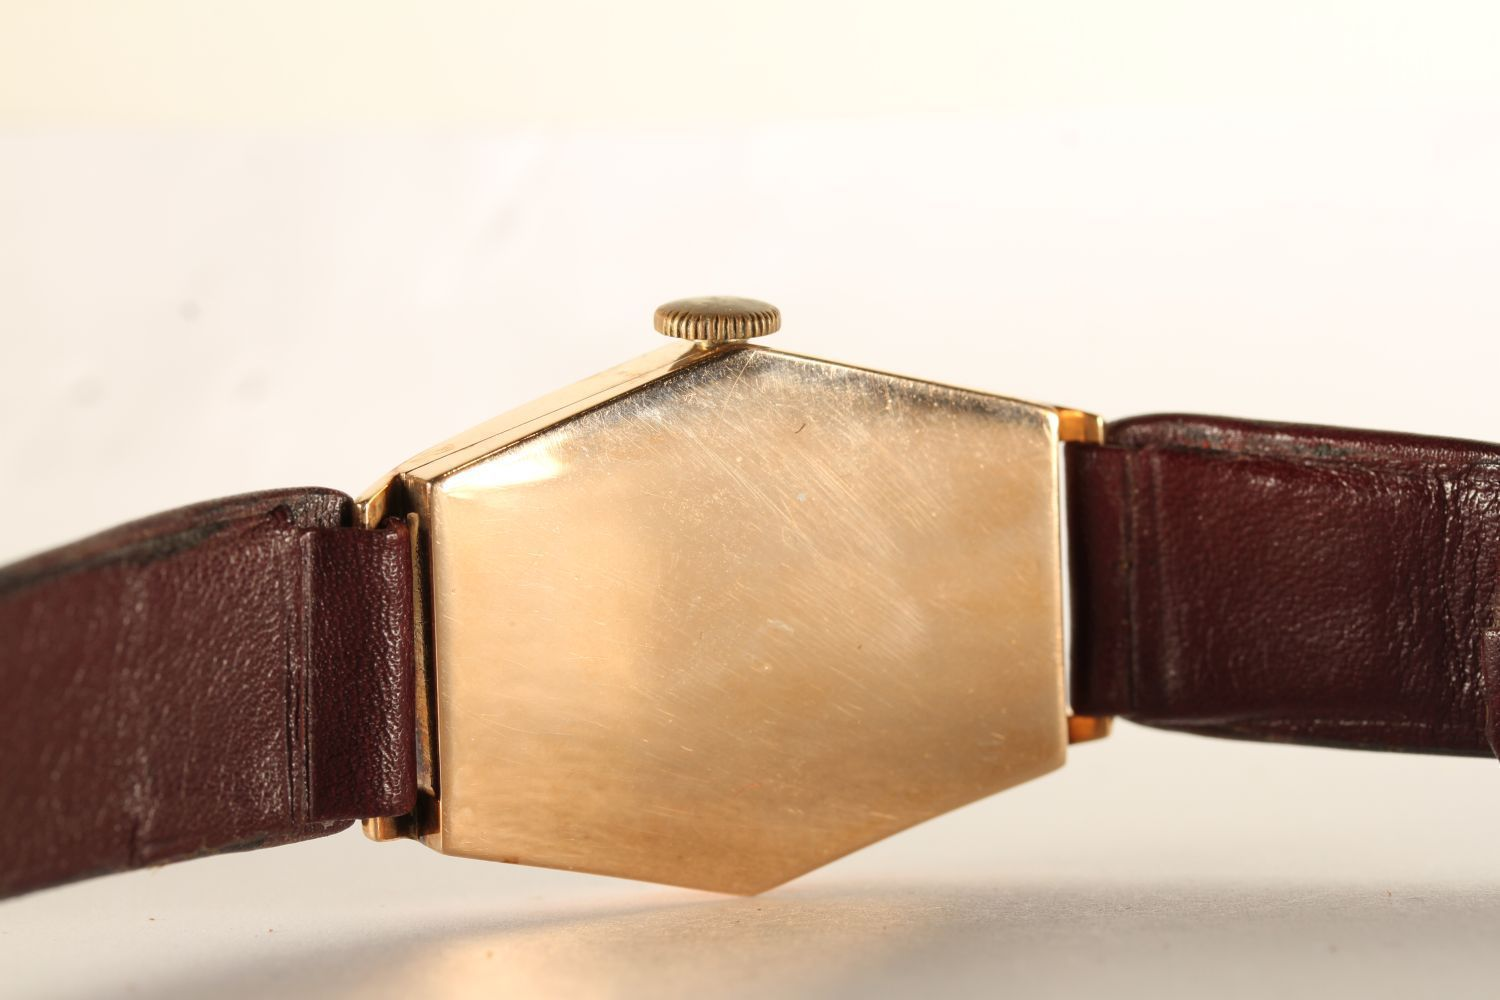 GENTLEMENS OMEGA OVERSIZE CIRCA 1920/30's WRISTWATCH, hexagonal aged dial with arabic numbers and an - Image 4 of 4